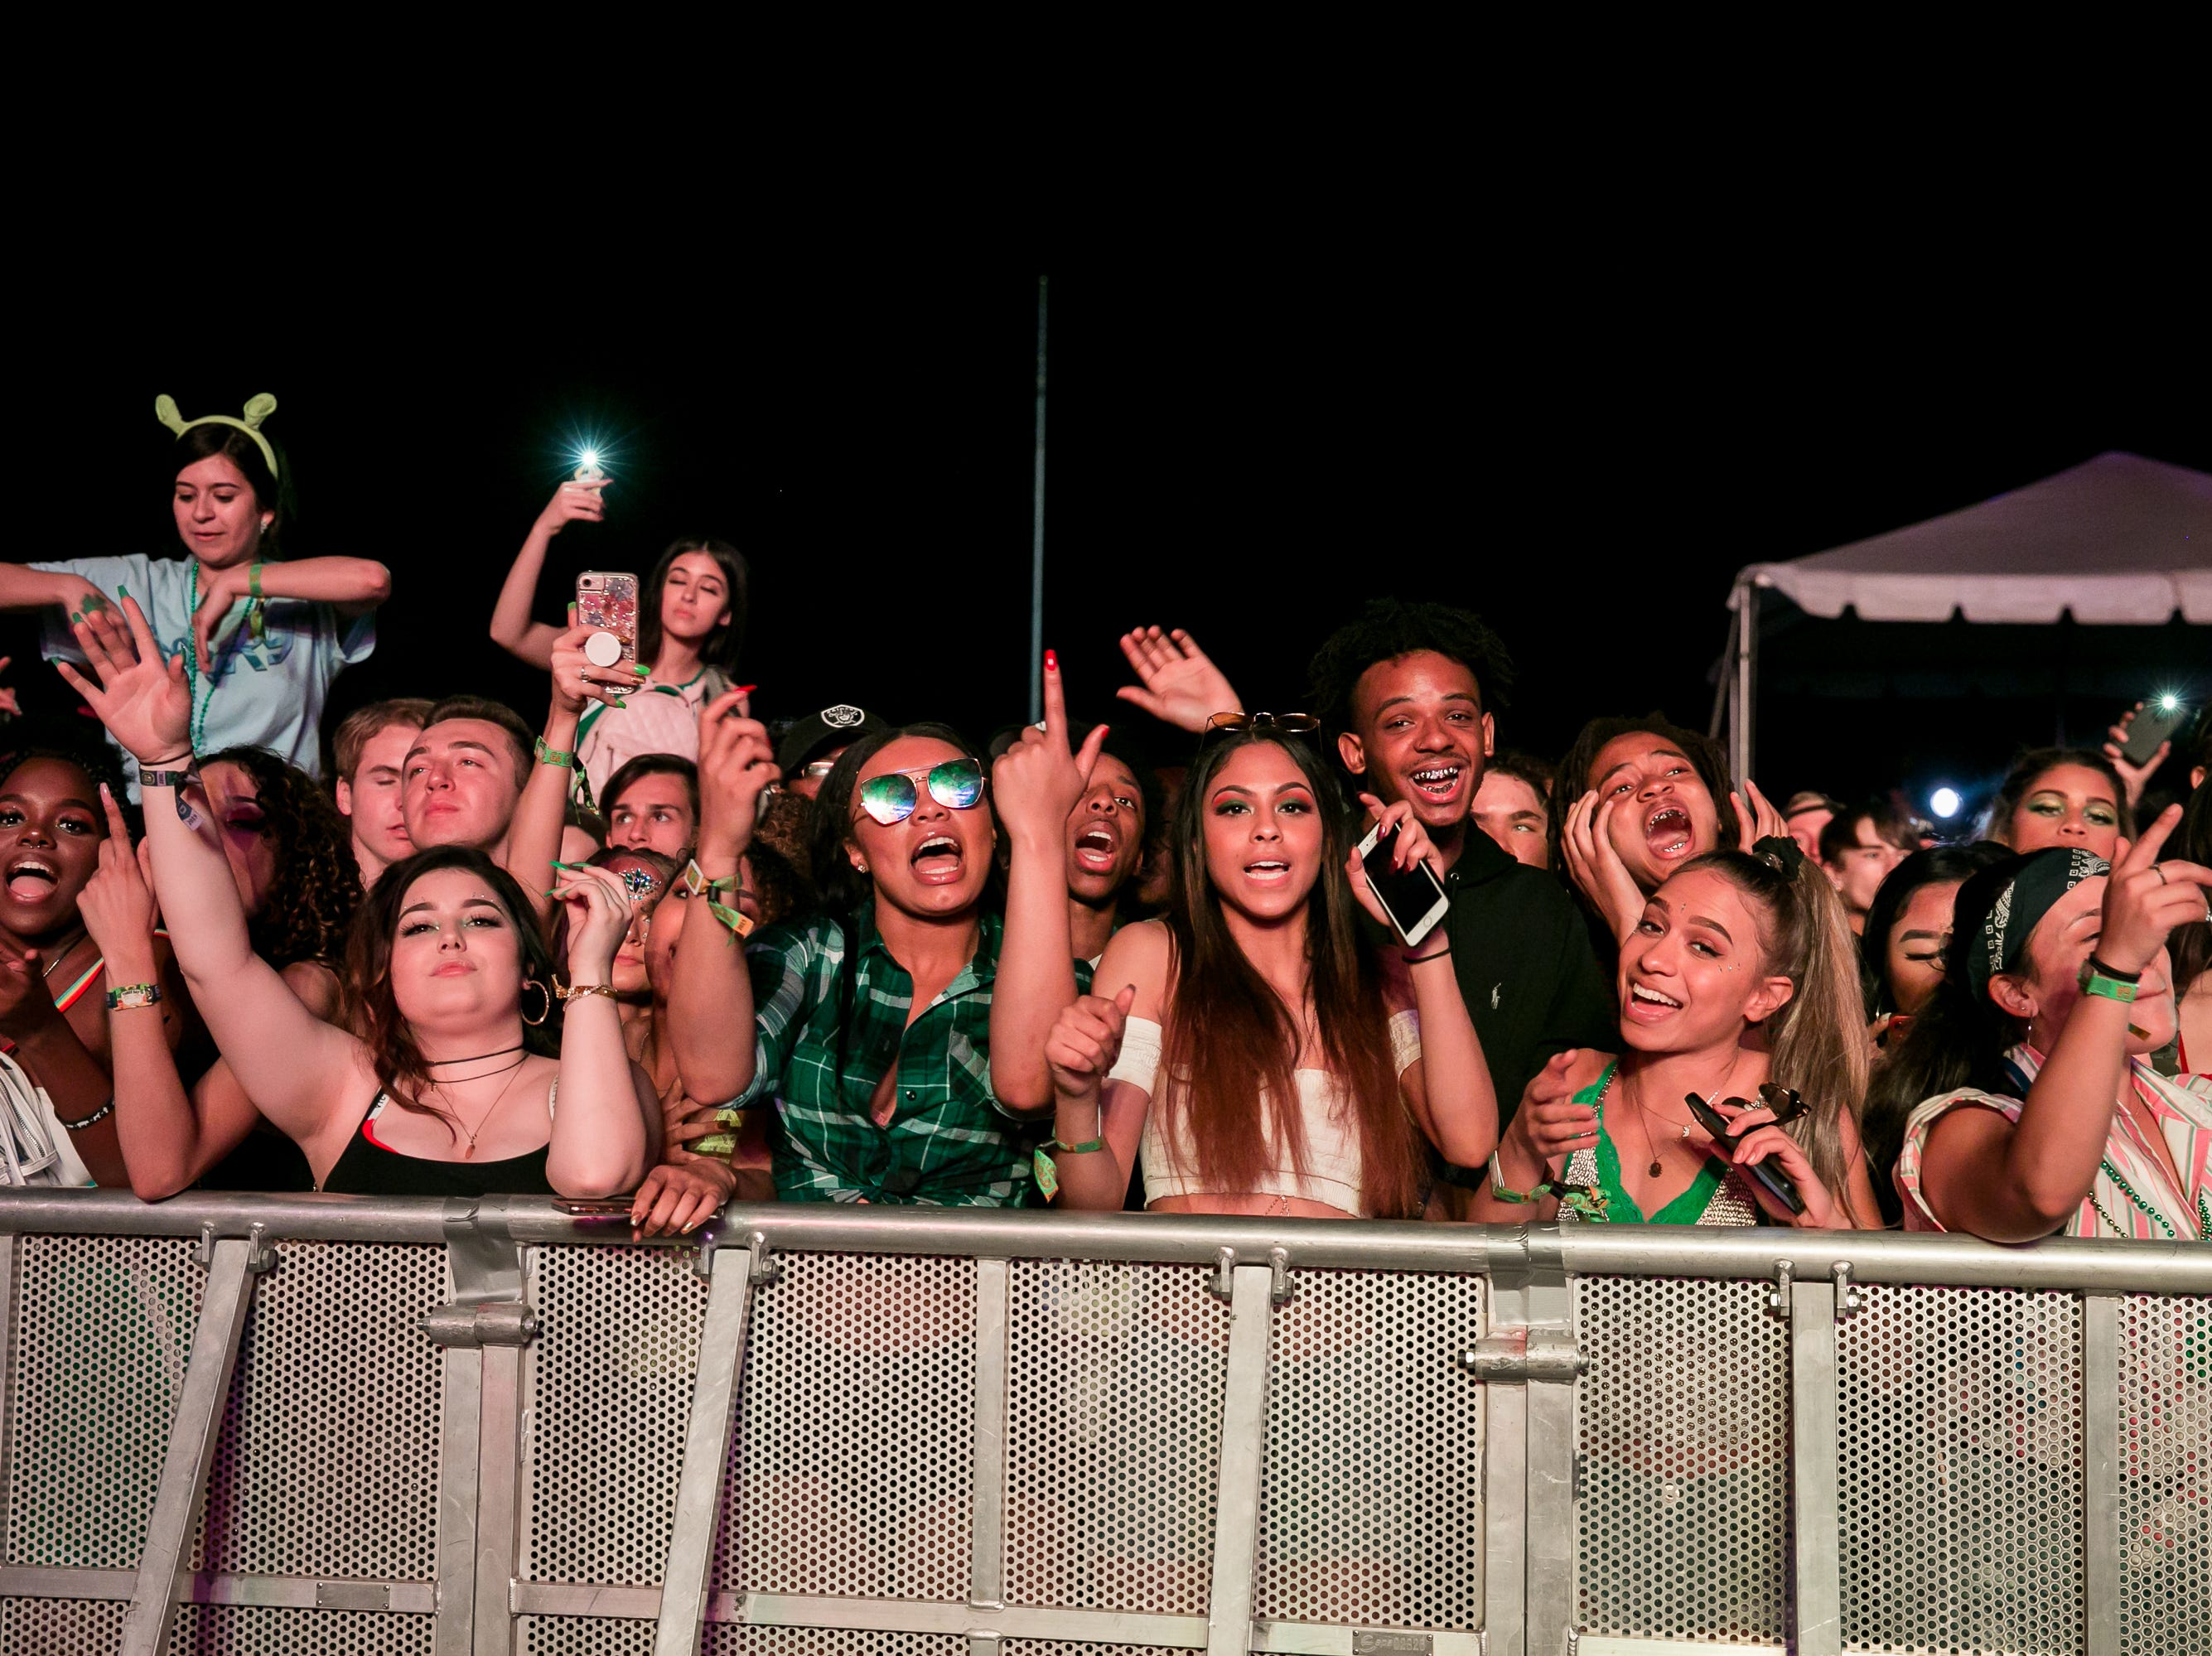 The crowd enjoyed Young Thug's set at Pot of Gold Music Festival on Sunday, March 17, 2019.